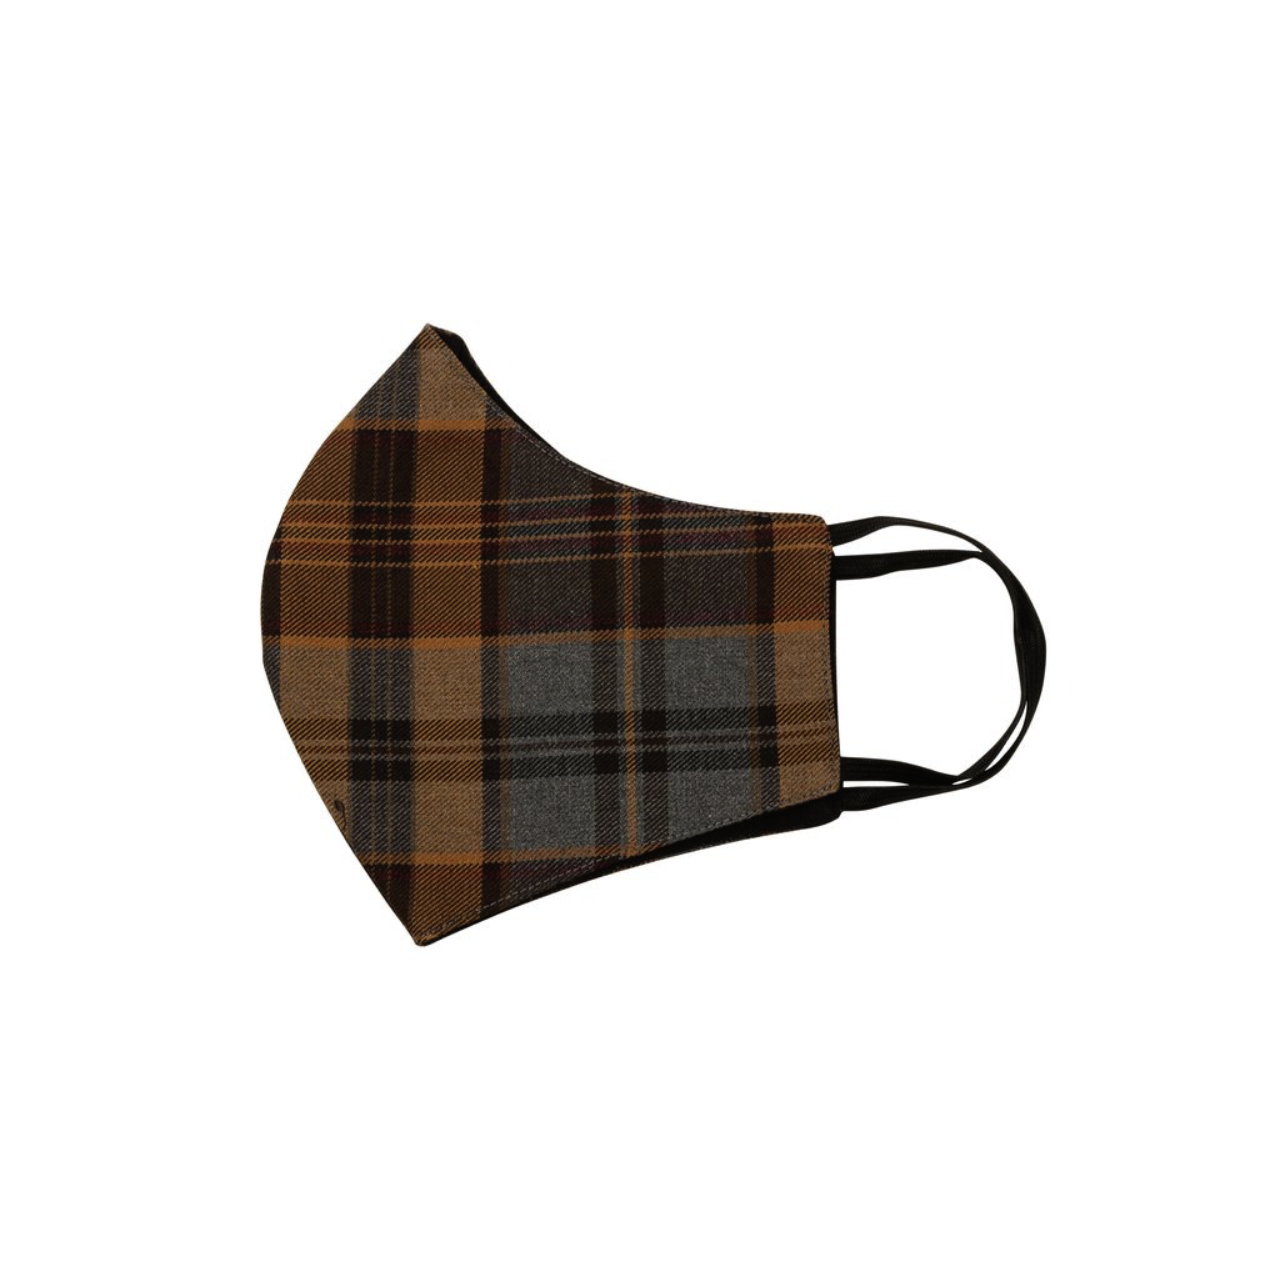 Relco London | Mask - Brown & Grey Tartan